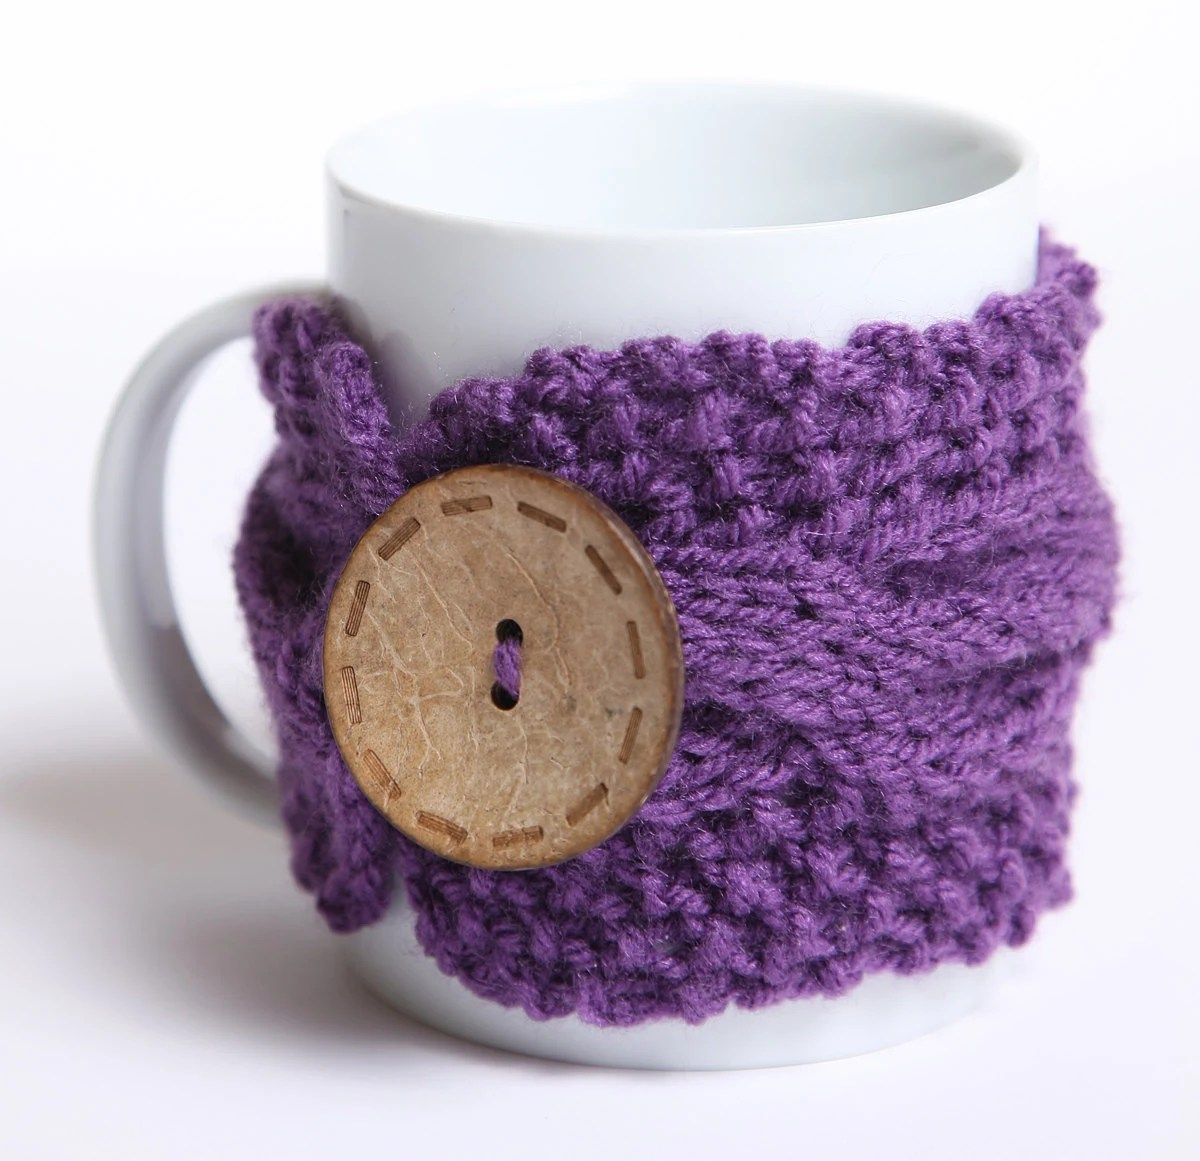 Knitted mug cozy, tea cup cozy,  coffee sleeve, purple, warmer